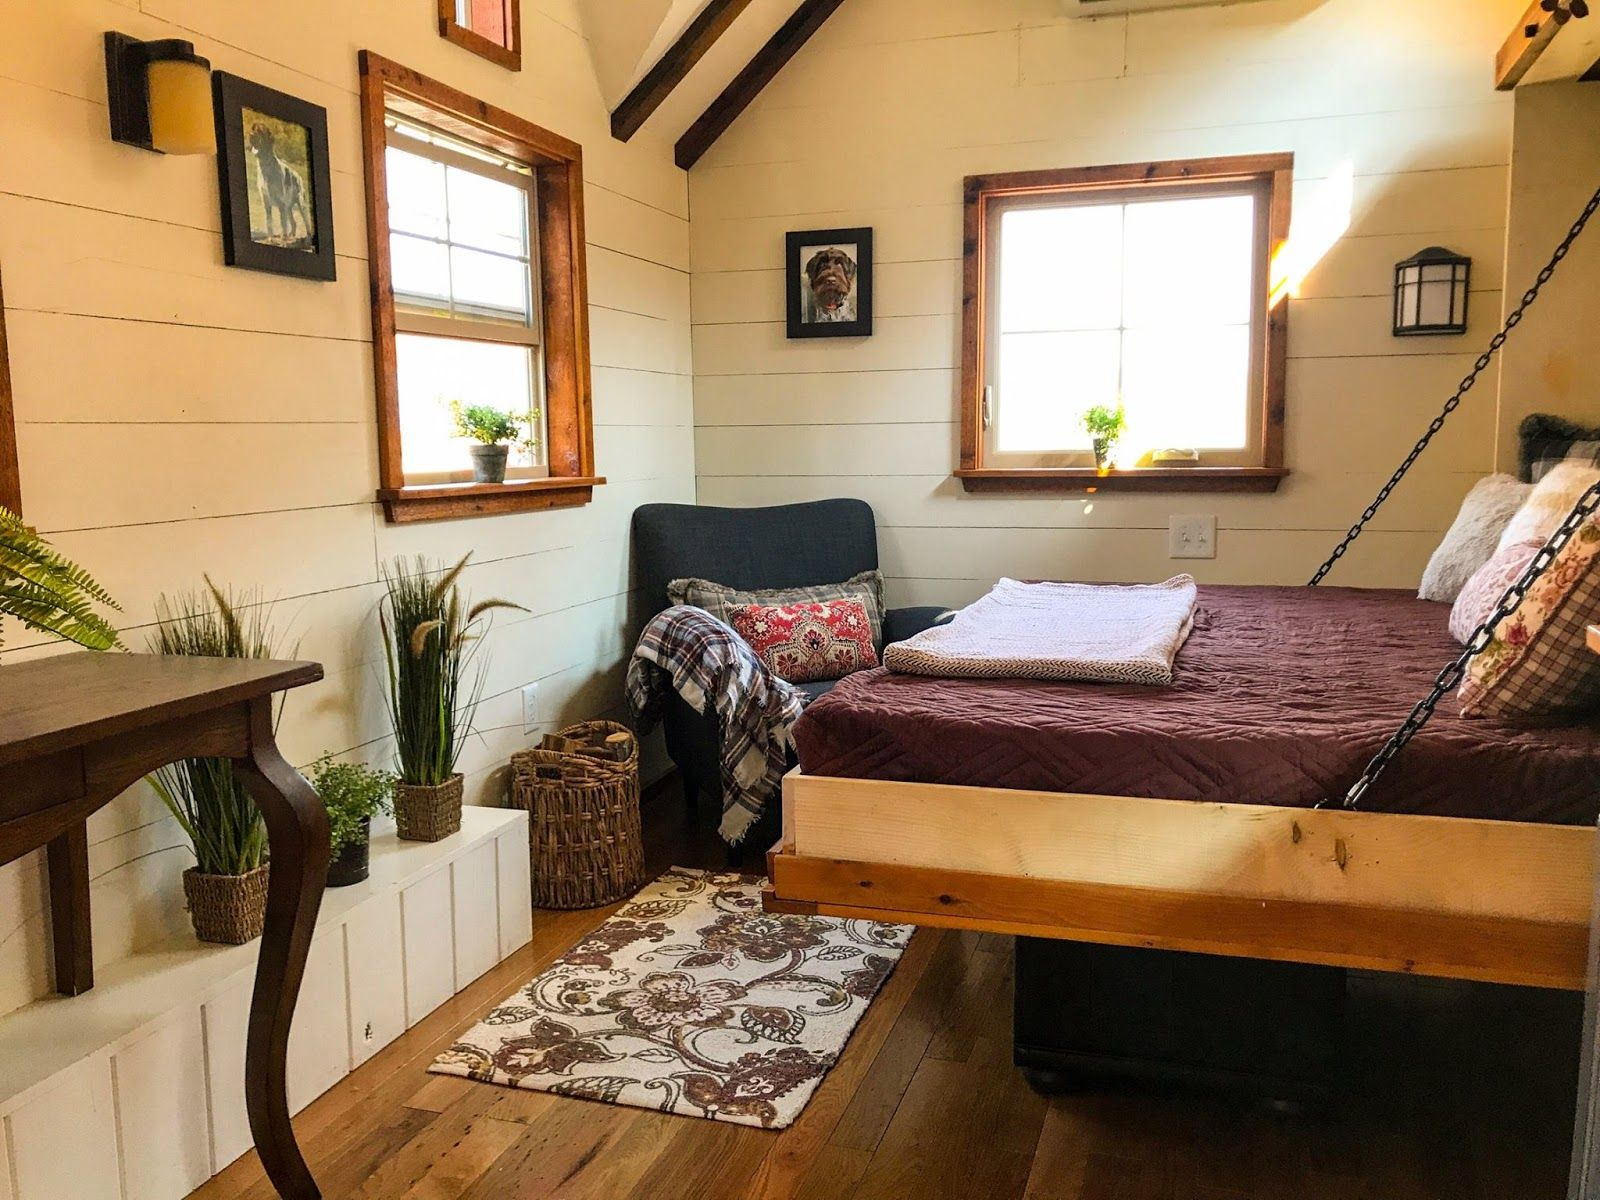 Bedroom interior roof this is the highland home itus a ft wide by ft long tiny home